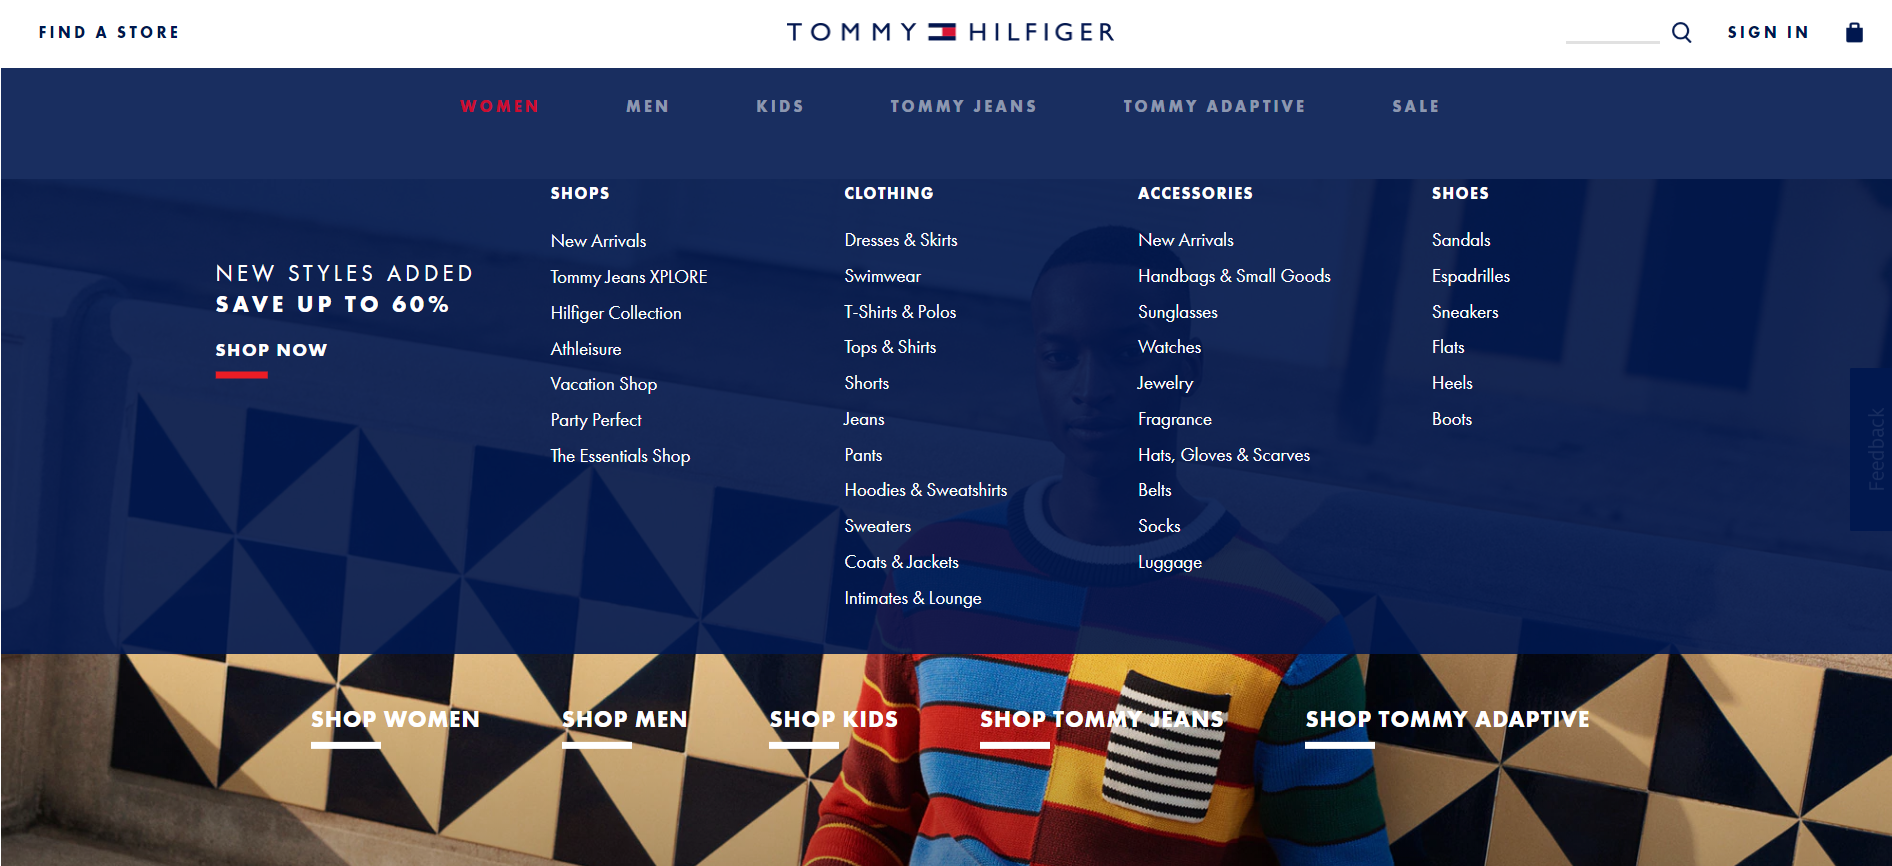 Tommy Hilfiger product categories screenshot